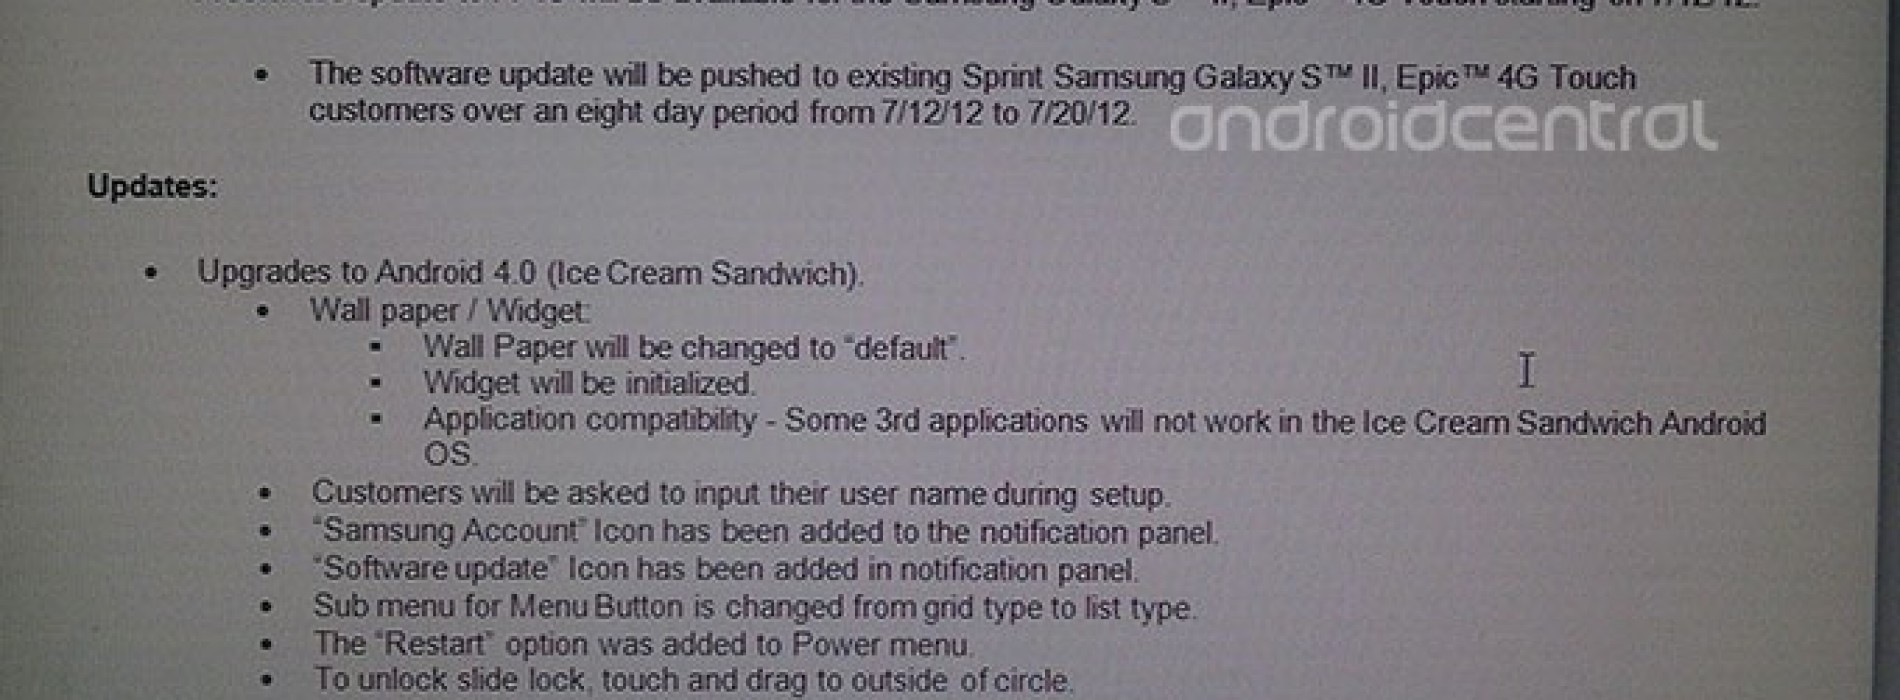 Samsung Galaxy S II Epic 4G Touch on Sprint slated for ICS this week